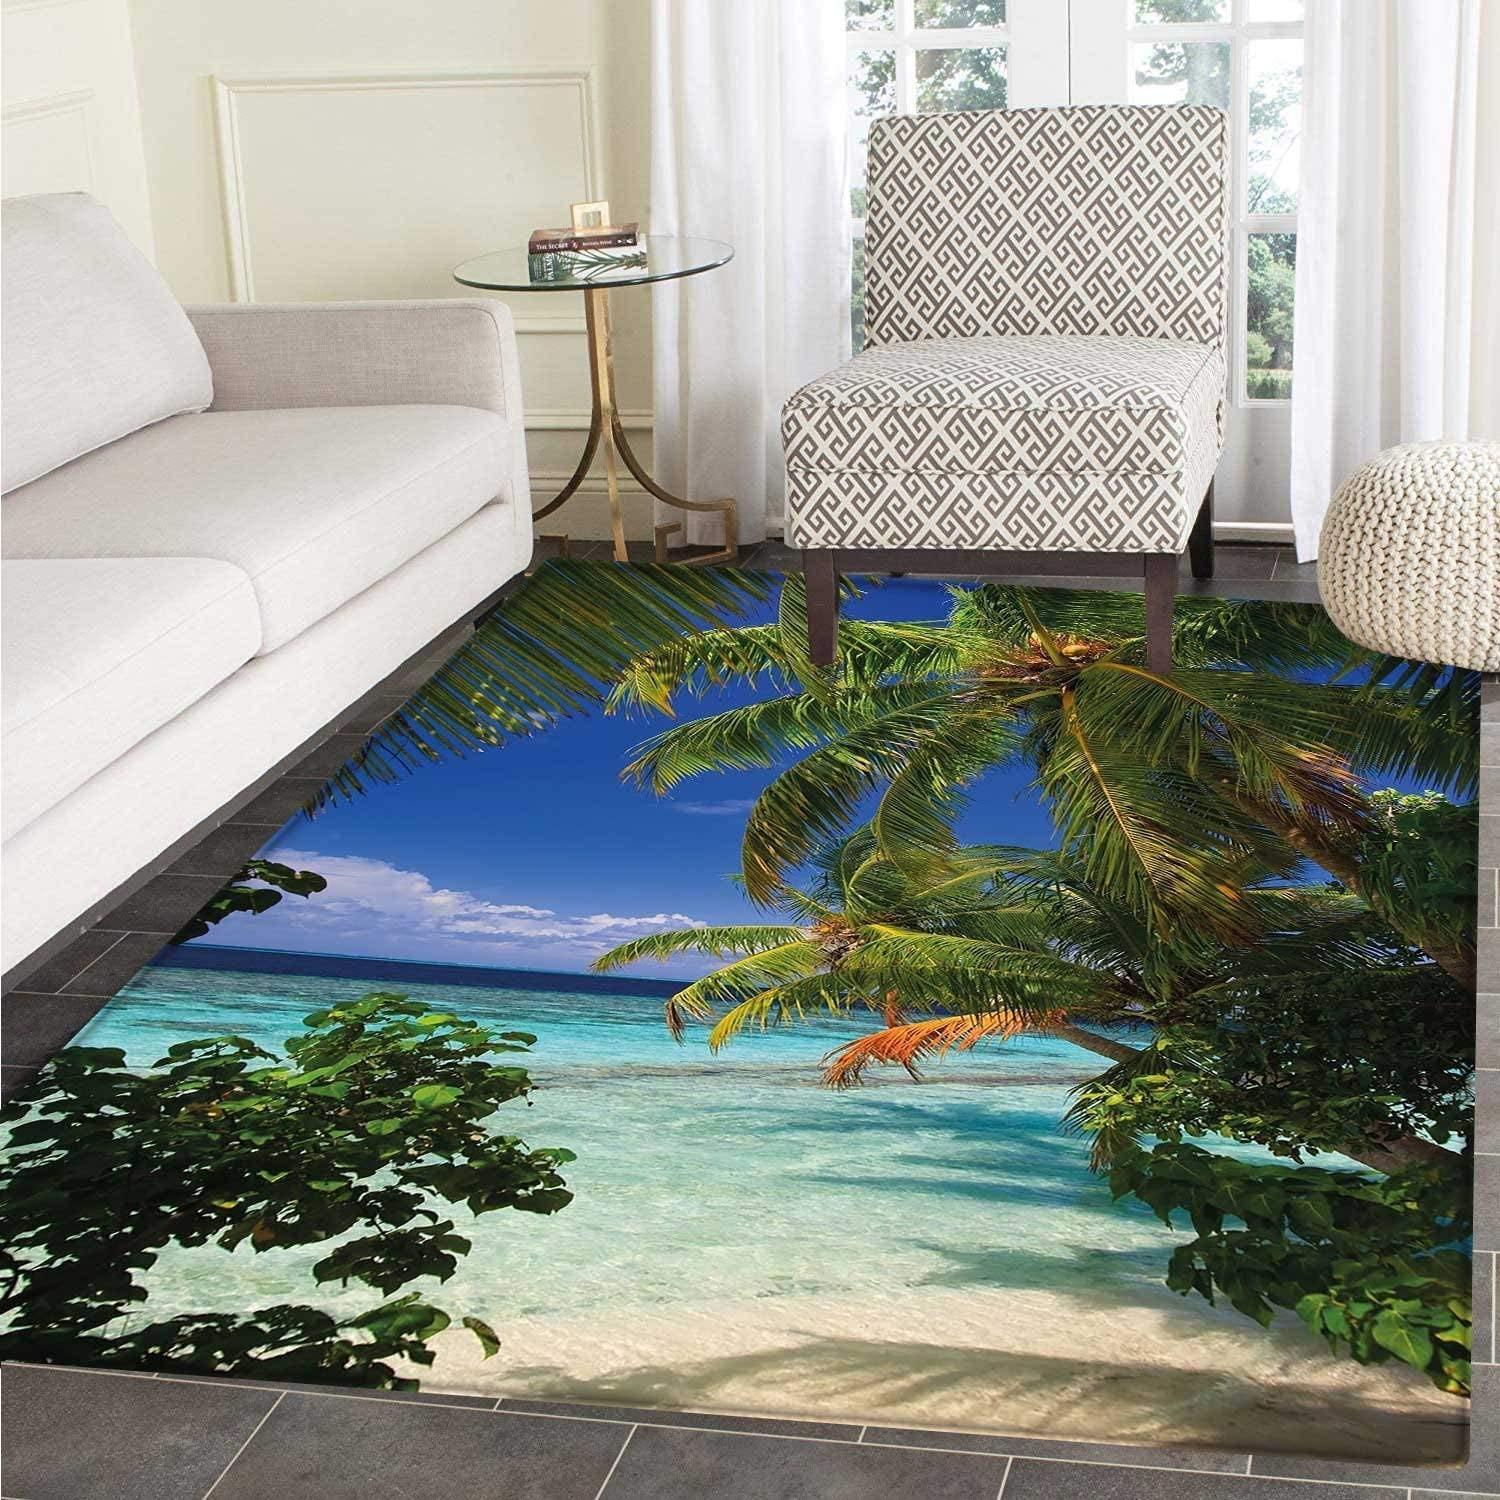 Plant Small Rug Carpet Tropical Paradise at Maldives Palms bluee Sky Beautiful Beaches Tranquility Floor Mat Rug Indoor Front Door Kitchen Living Room Bedroom Mats Rubber Carpe Non Slip